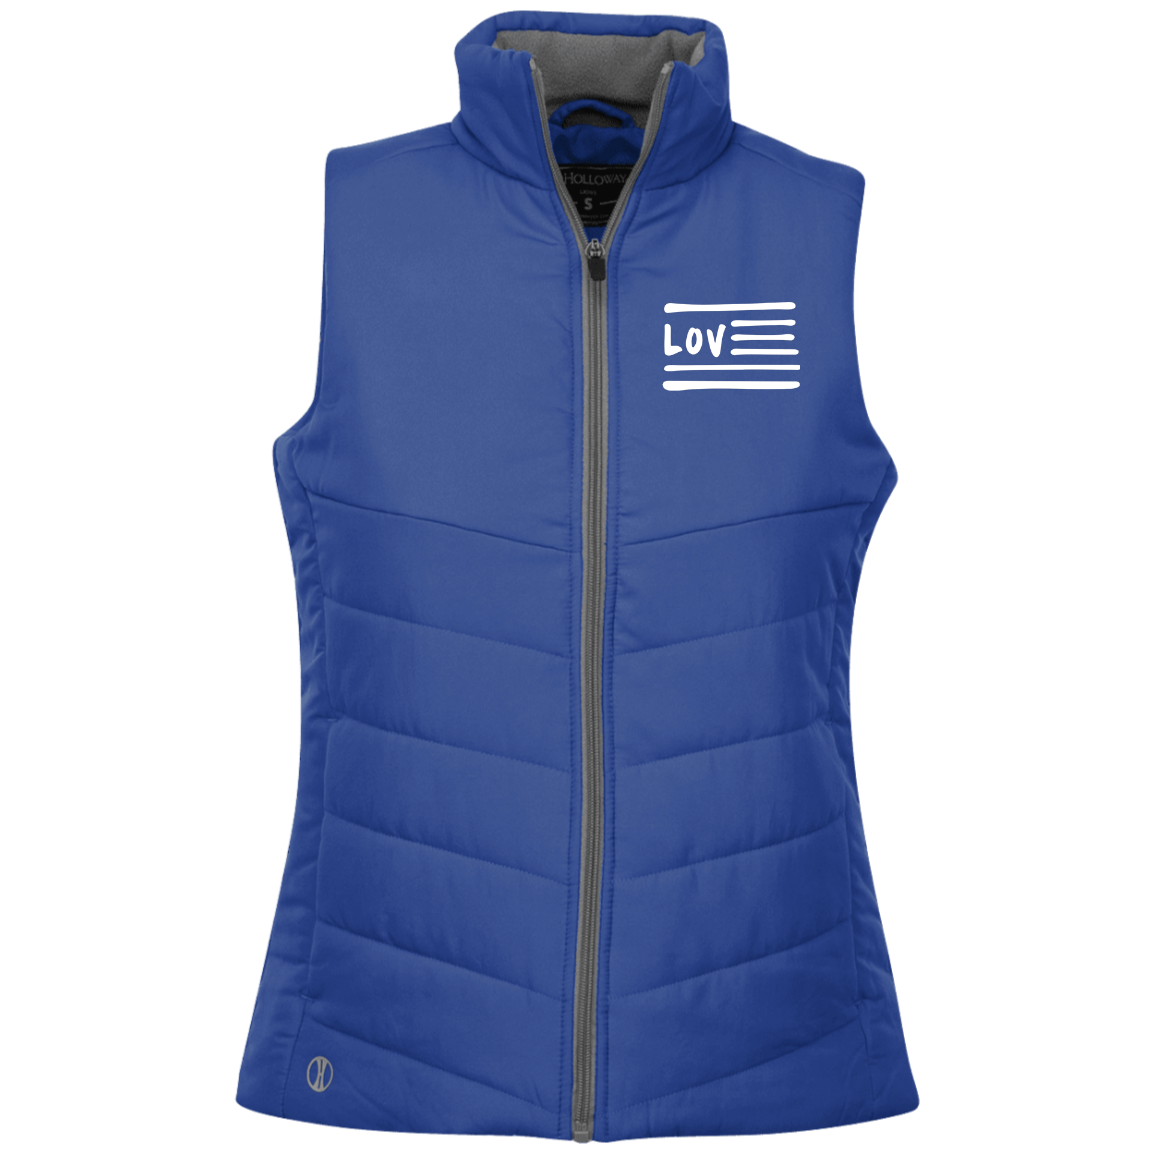 Love Nation Holloway Ladies' Quilted Vest - Vinyl Clothing Co - DJ Apparel Clothing Disc Jockey Vinyl Gear